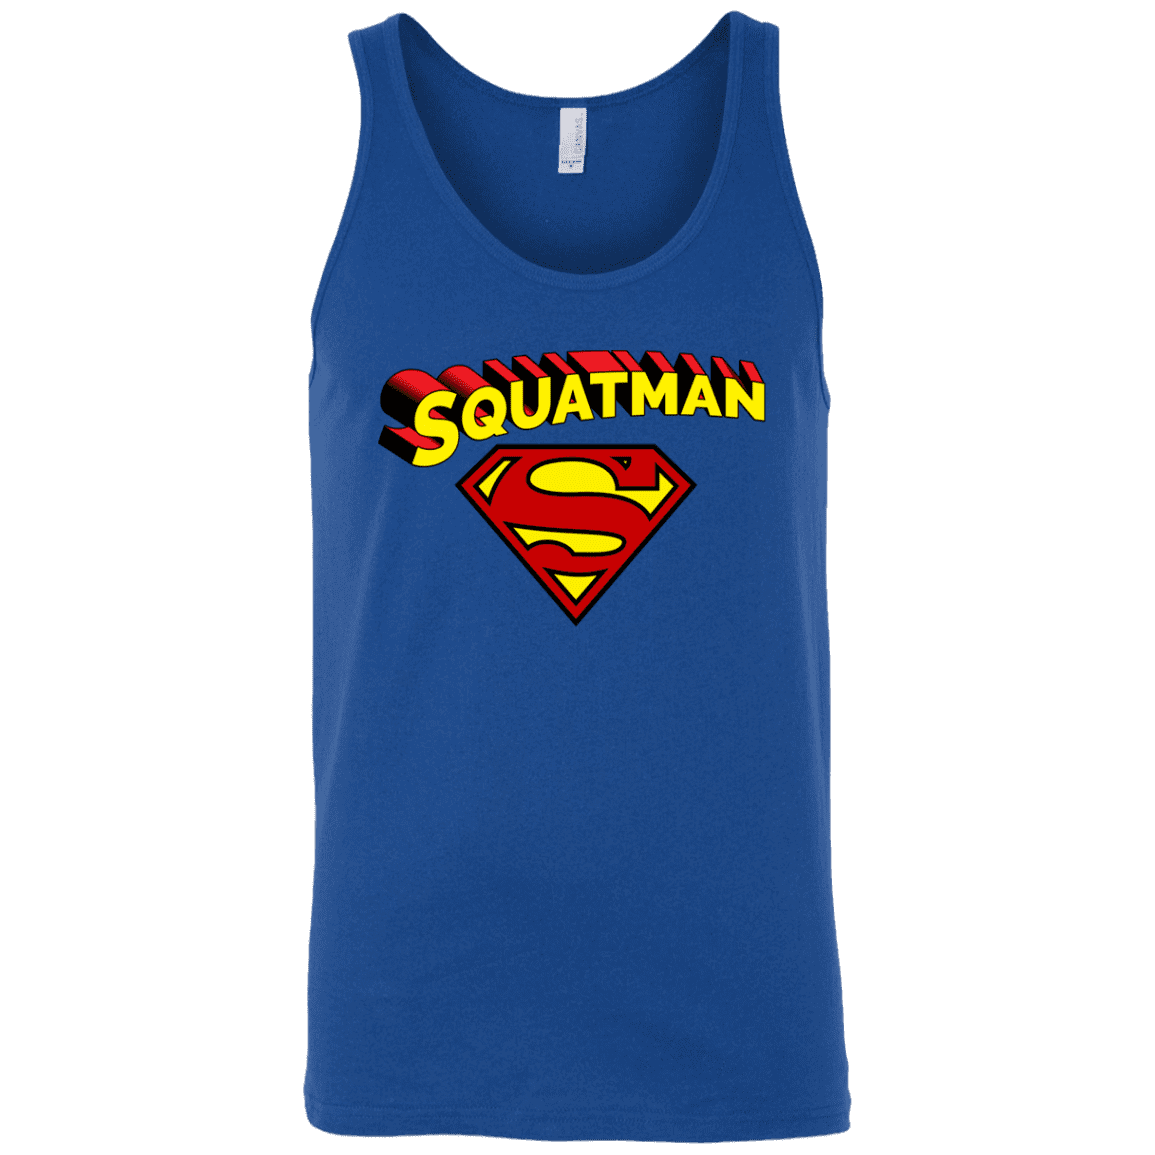 T-Shirts Royal Blue / X-Small Squatman Tank Top